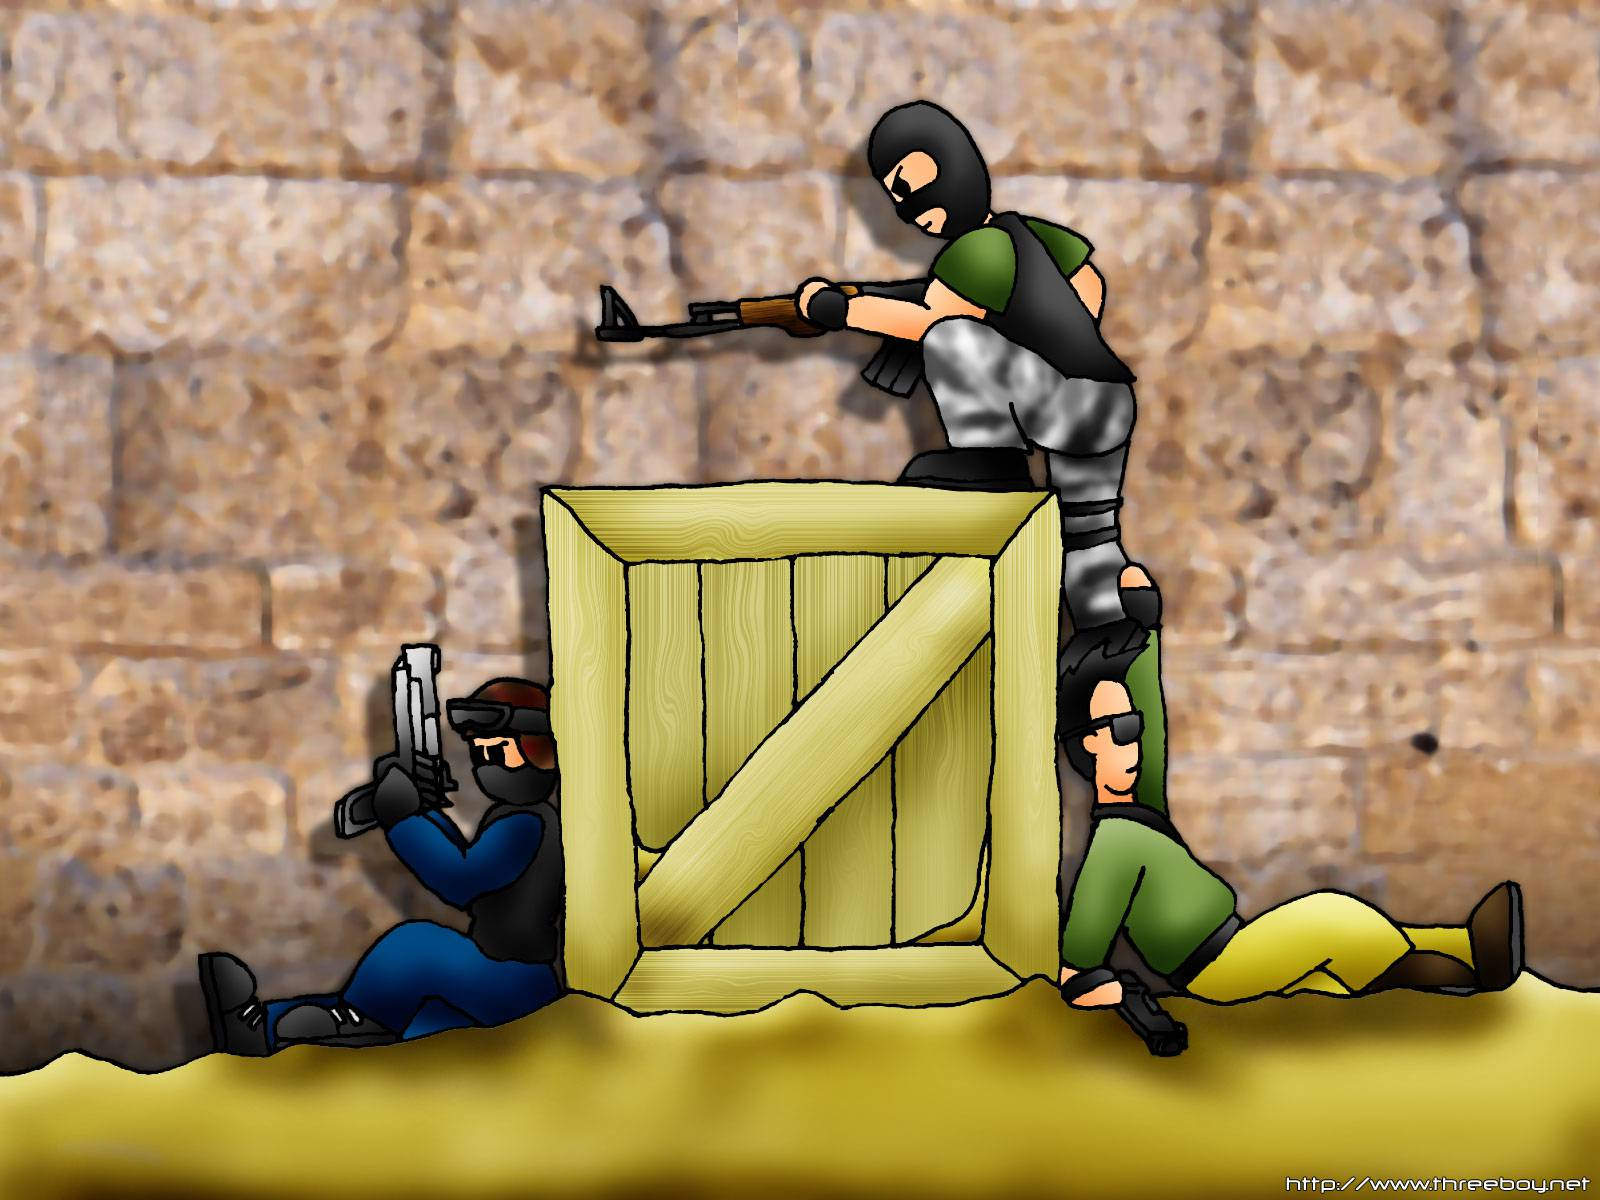 Dragon Skin Girl Wallpaper Imagini Si Poze Counter Strike